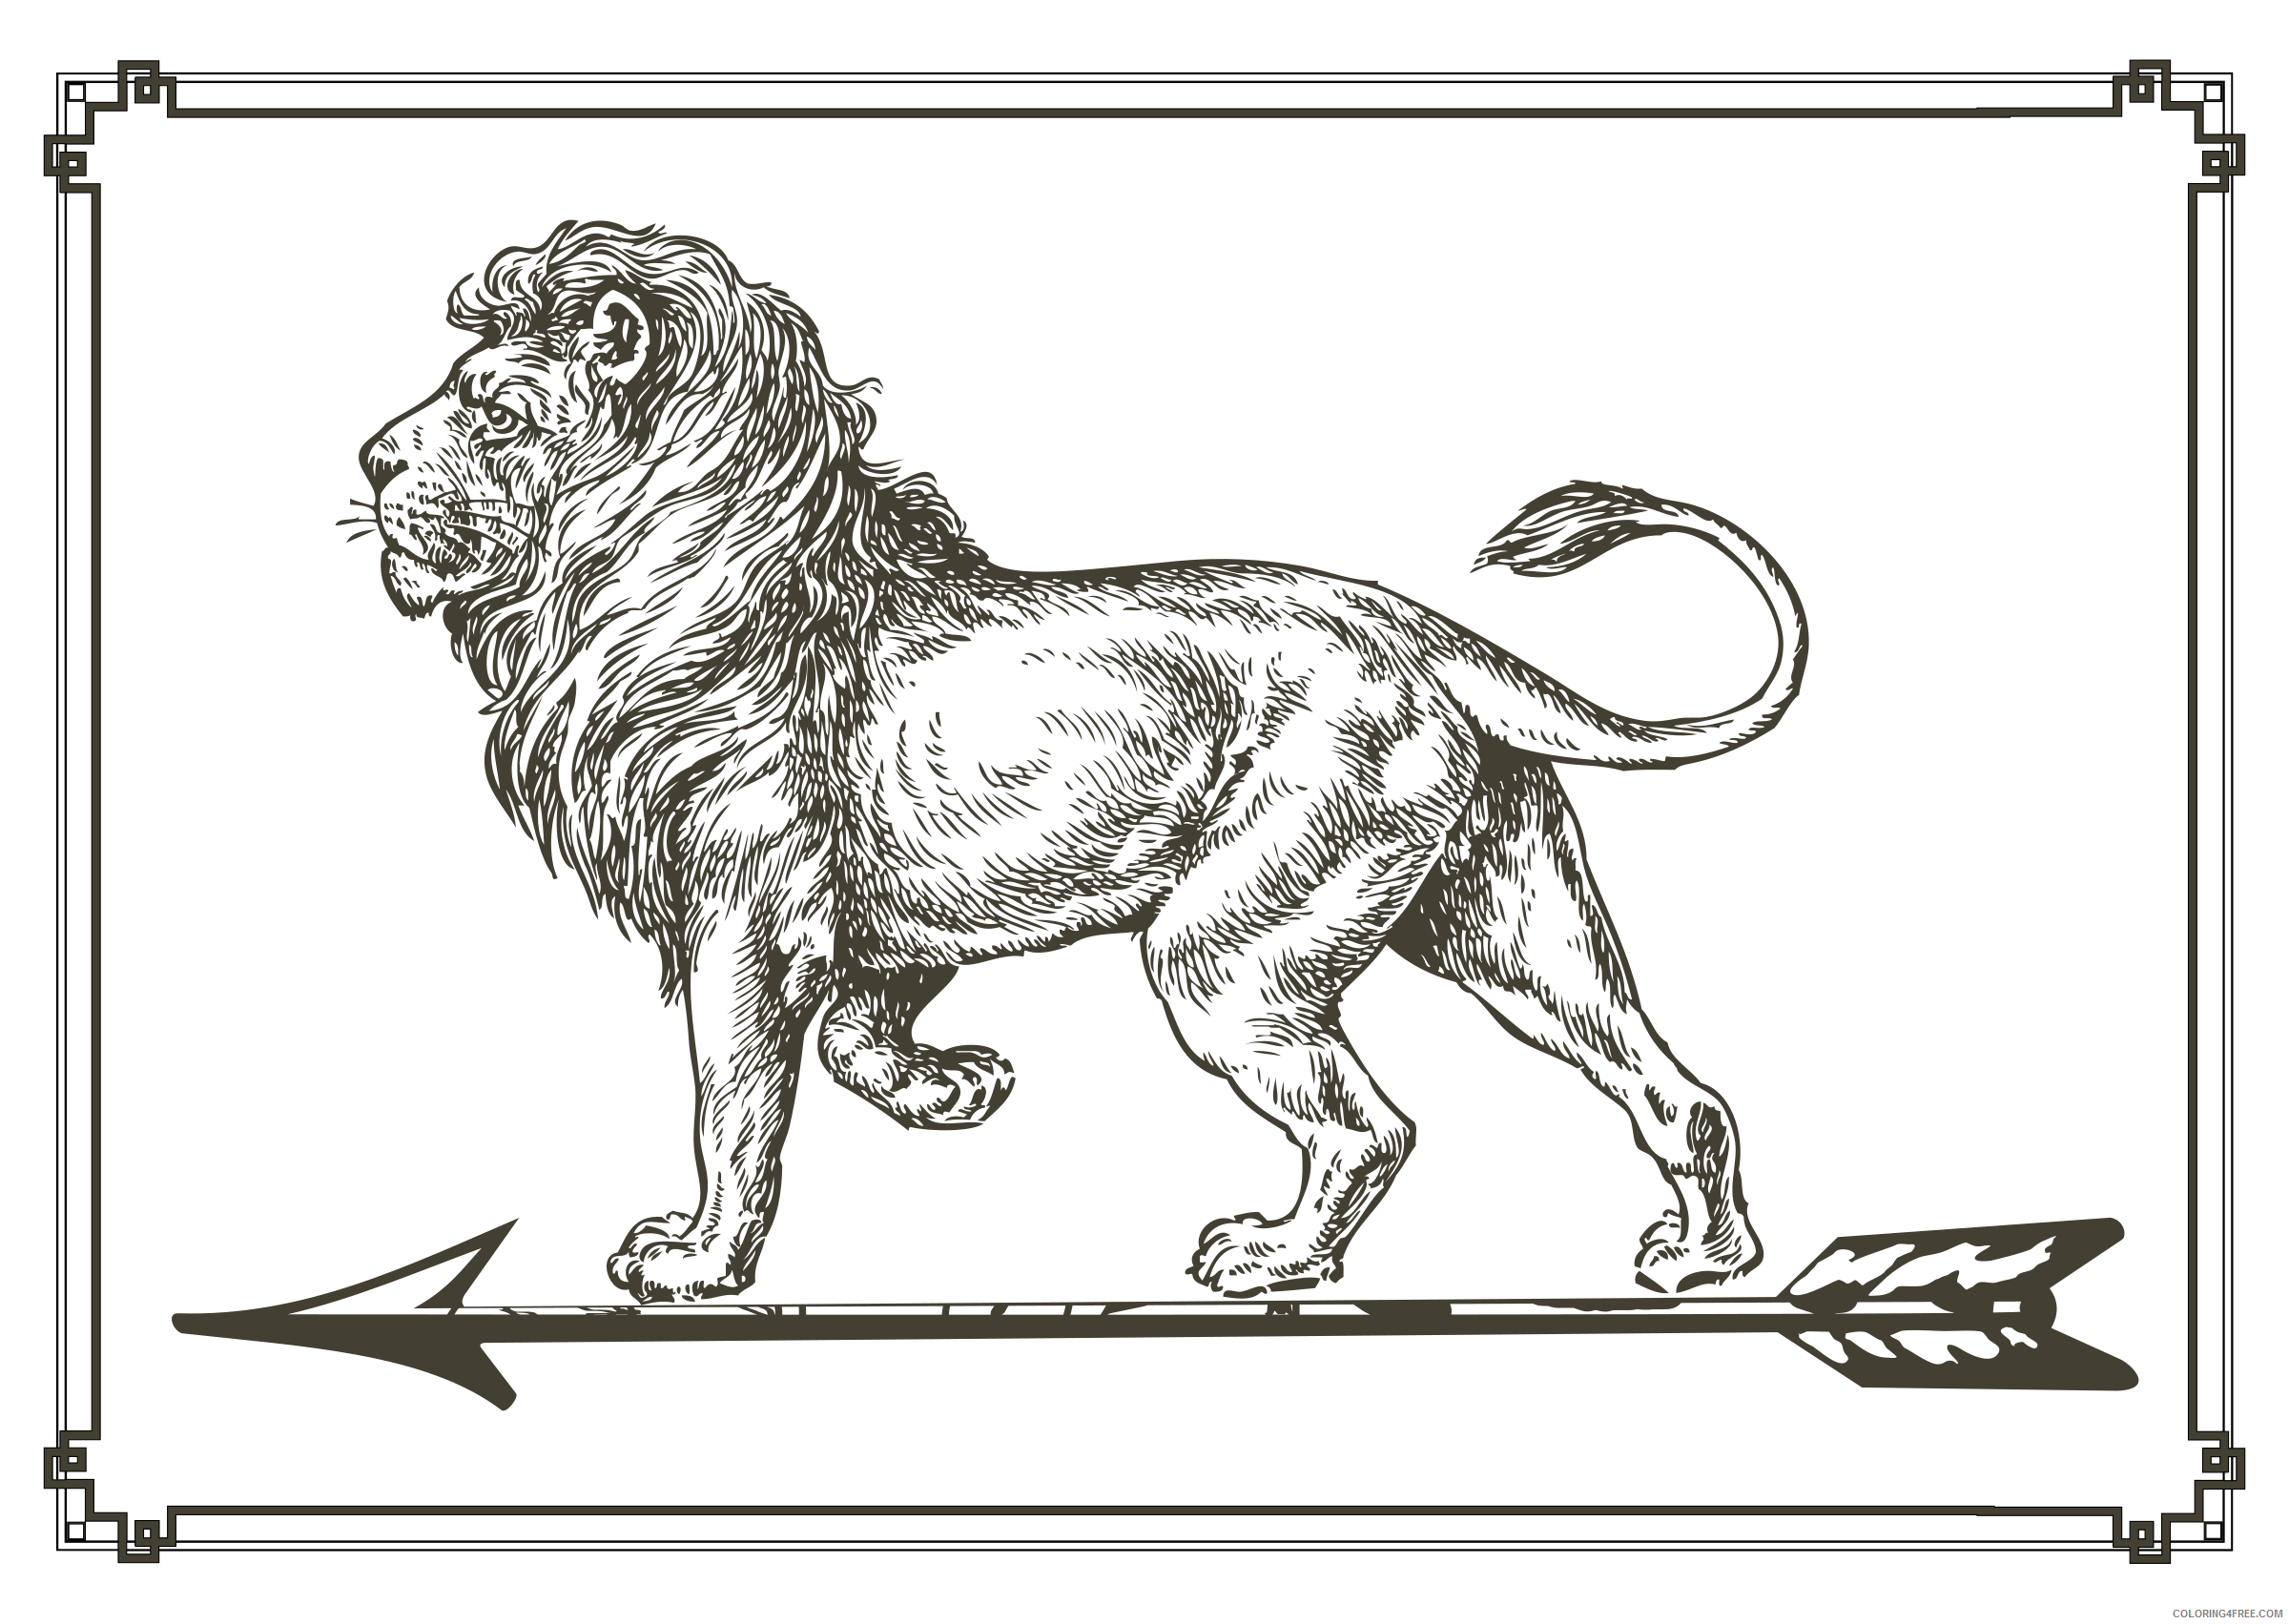 Black and White Lion Coloring Pages lion on arrow Printable Coloring4free